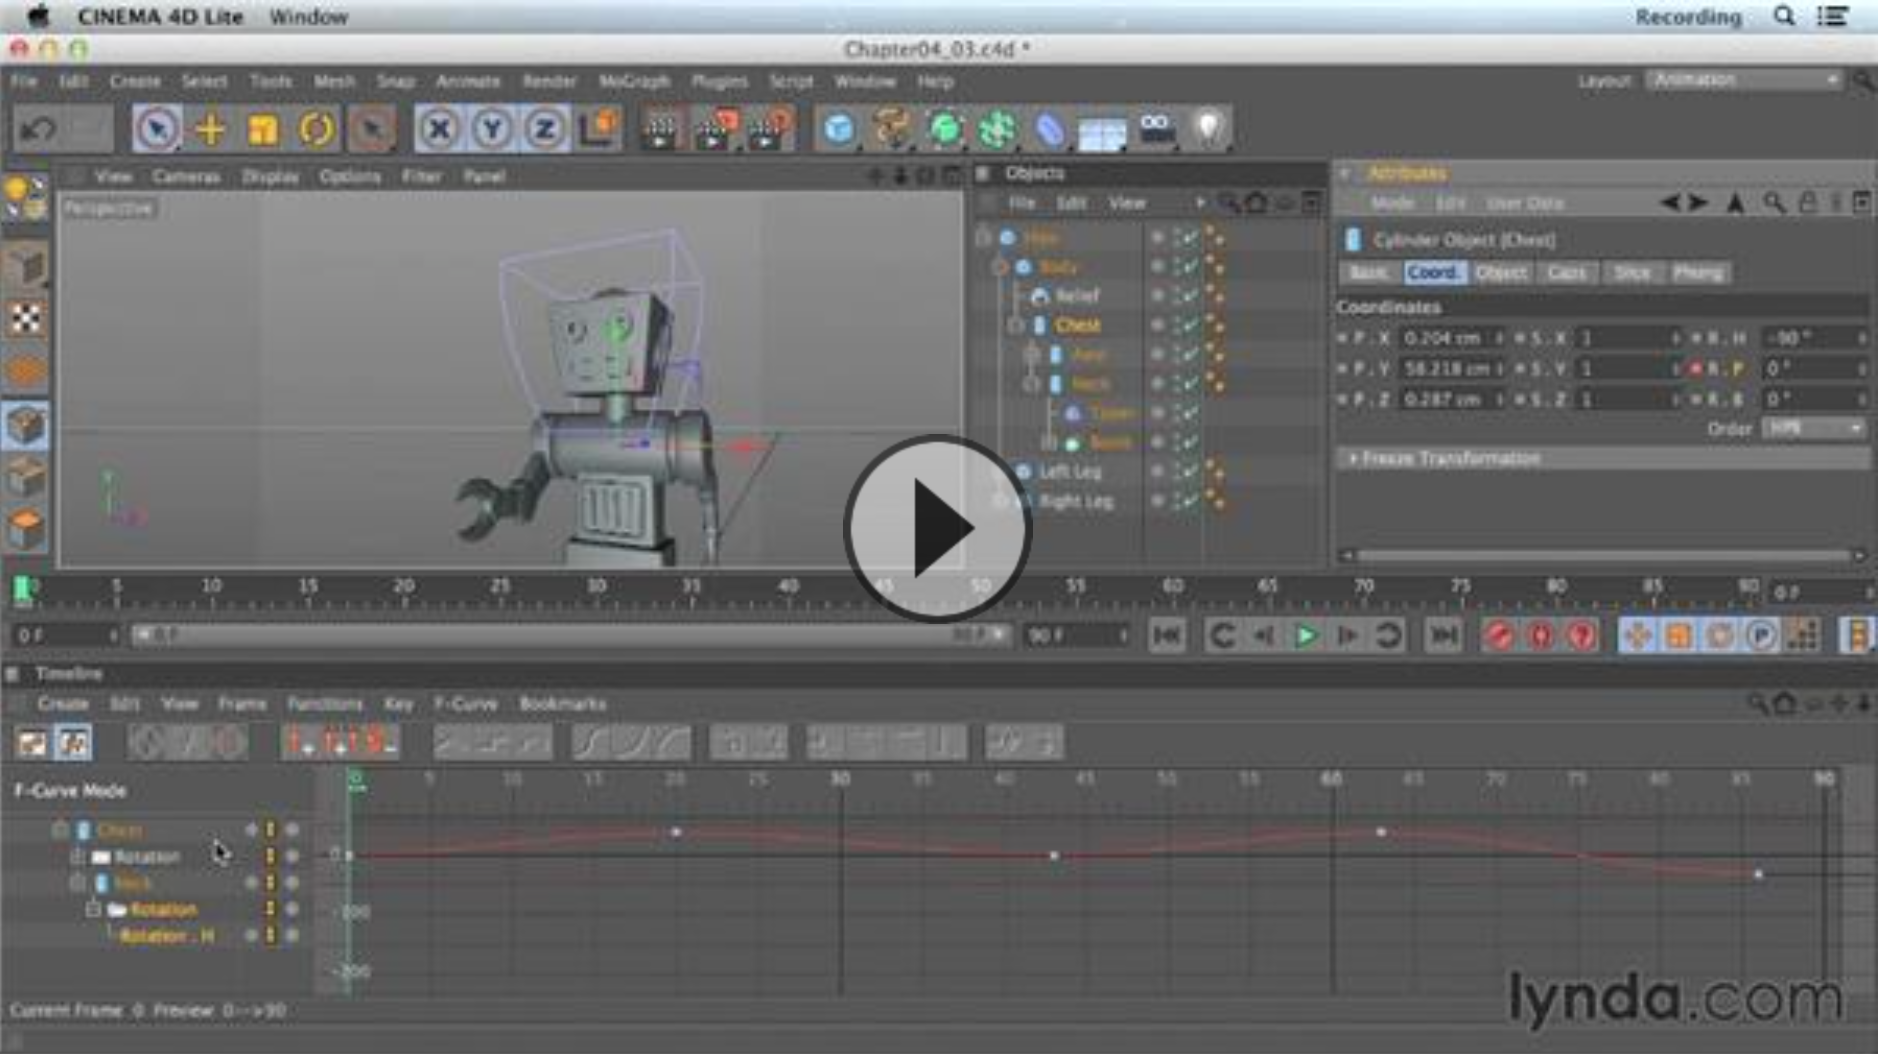 Keyframe interpolation in Cinema 4D